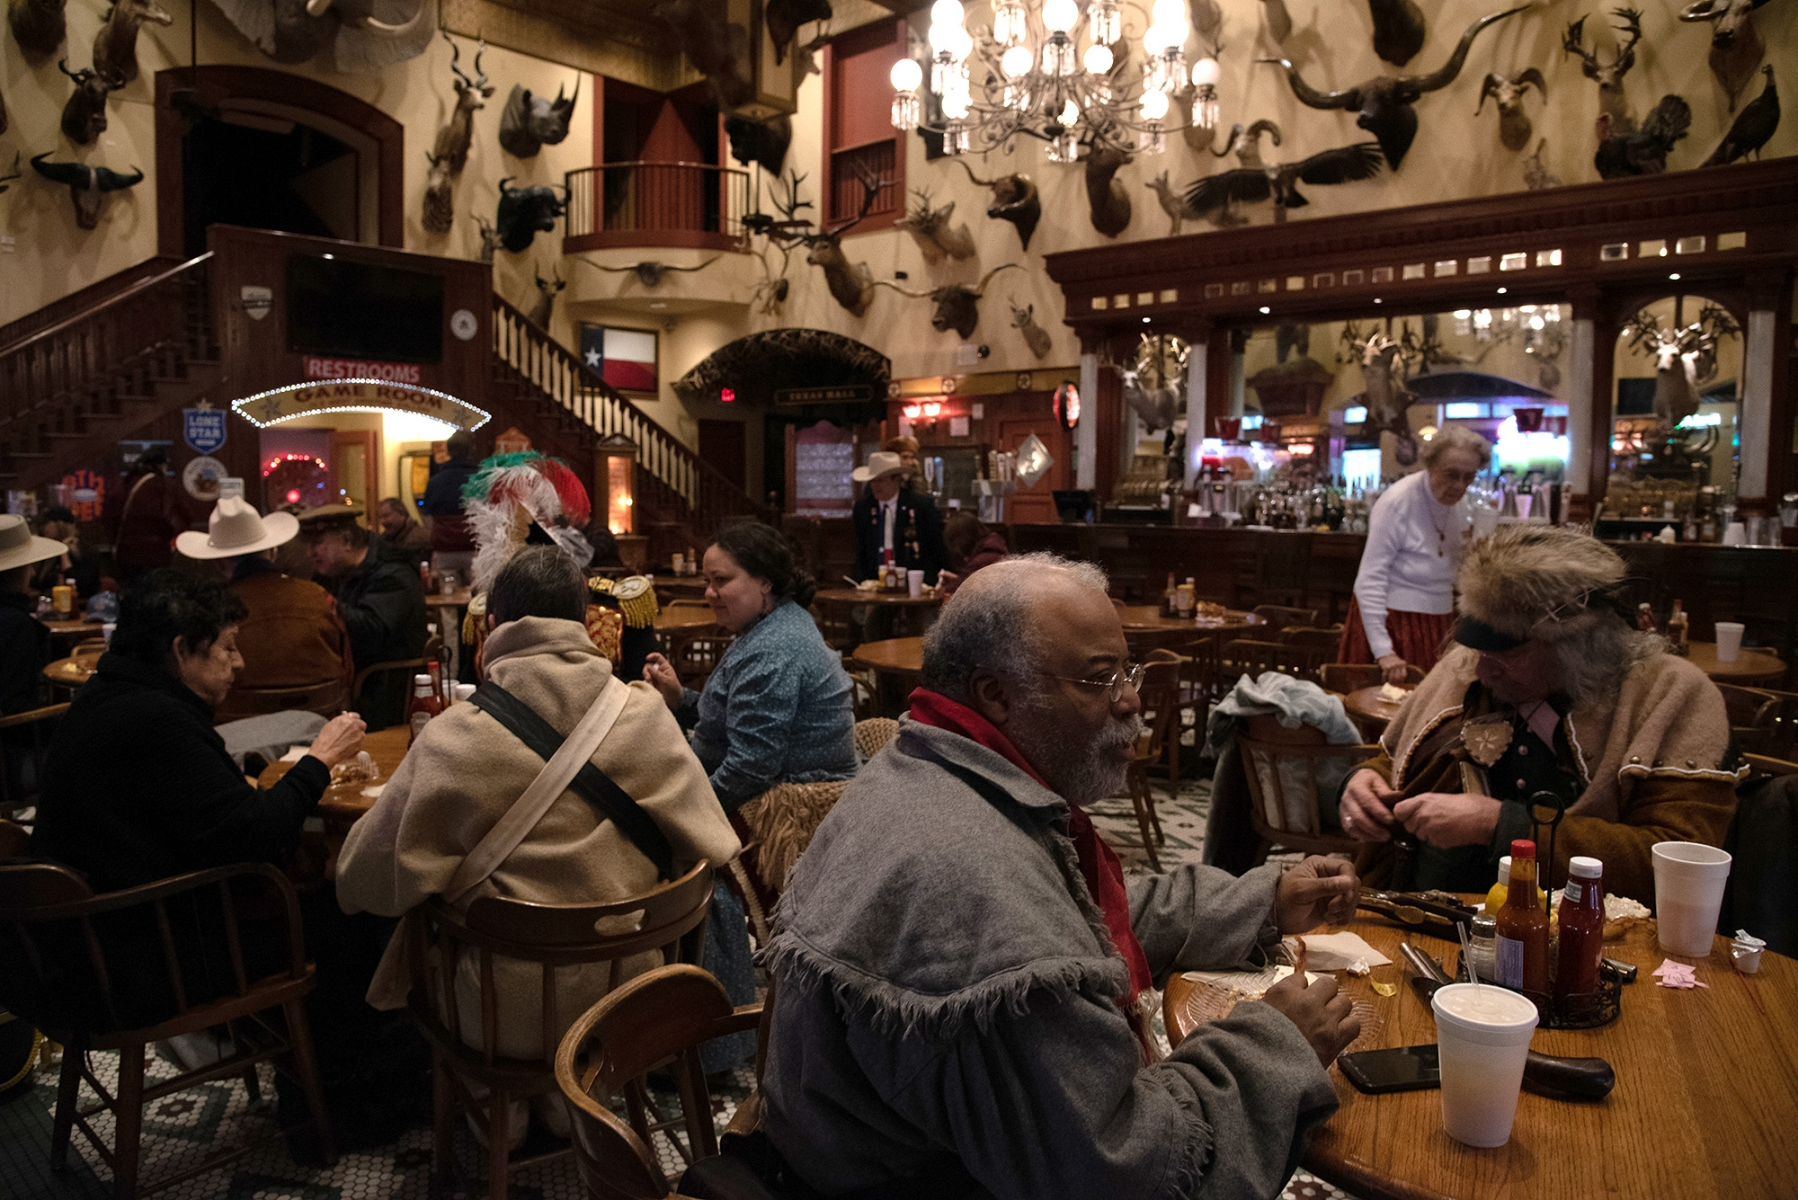 Some individuals who participated in the Dawn at the Alamo ceremony eat breakfast after the event March 6, 2019, at the Buckhorn Saloon.